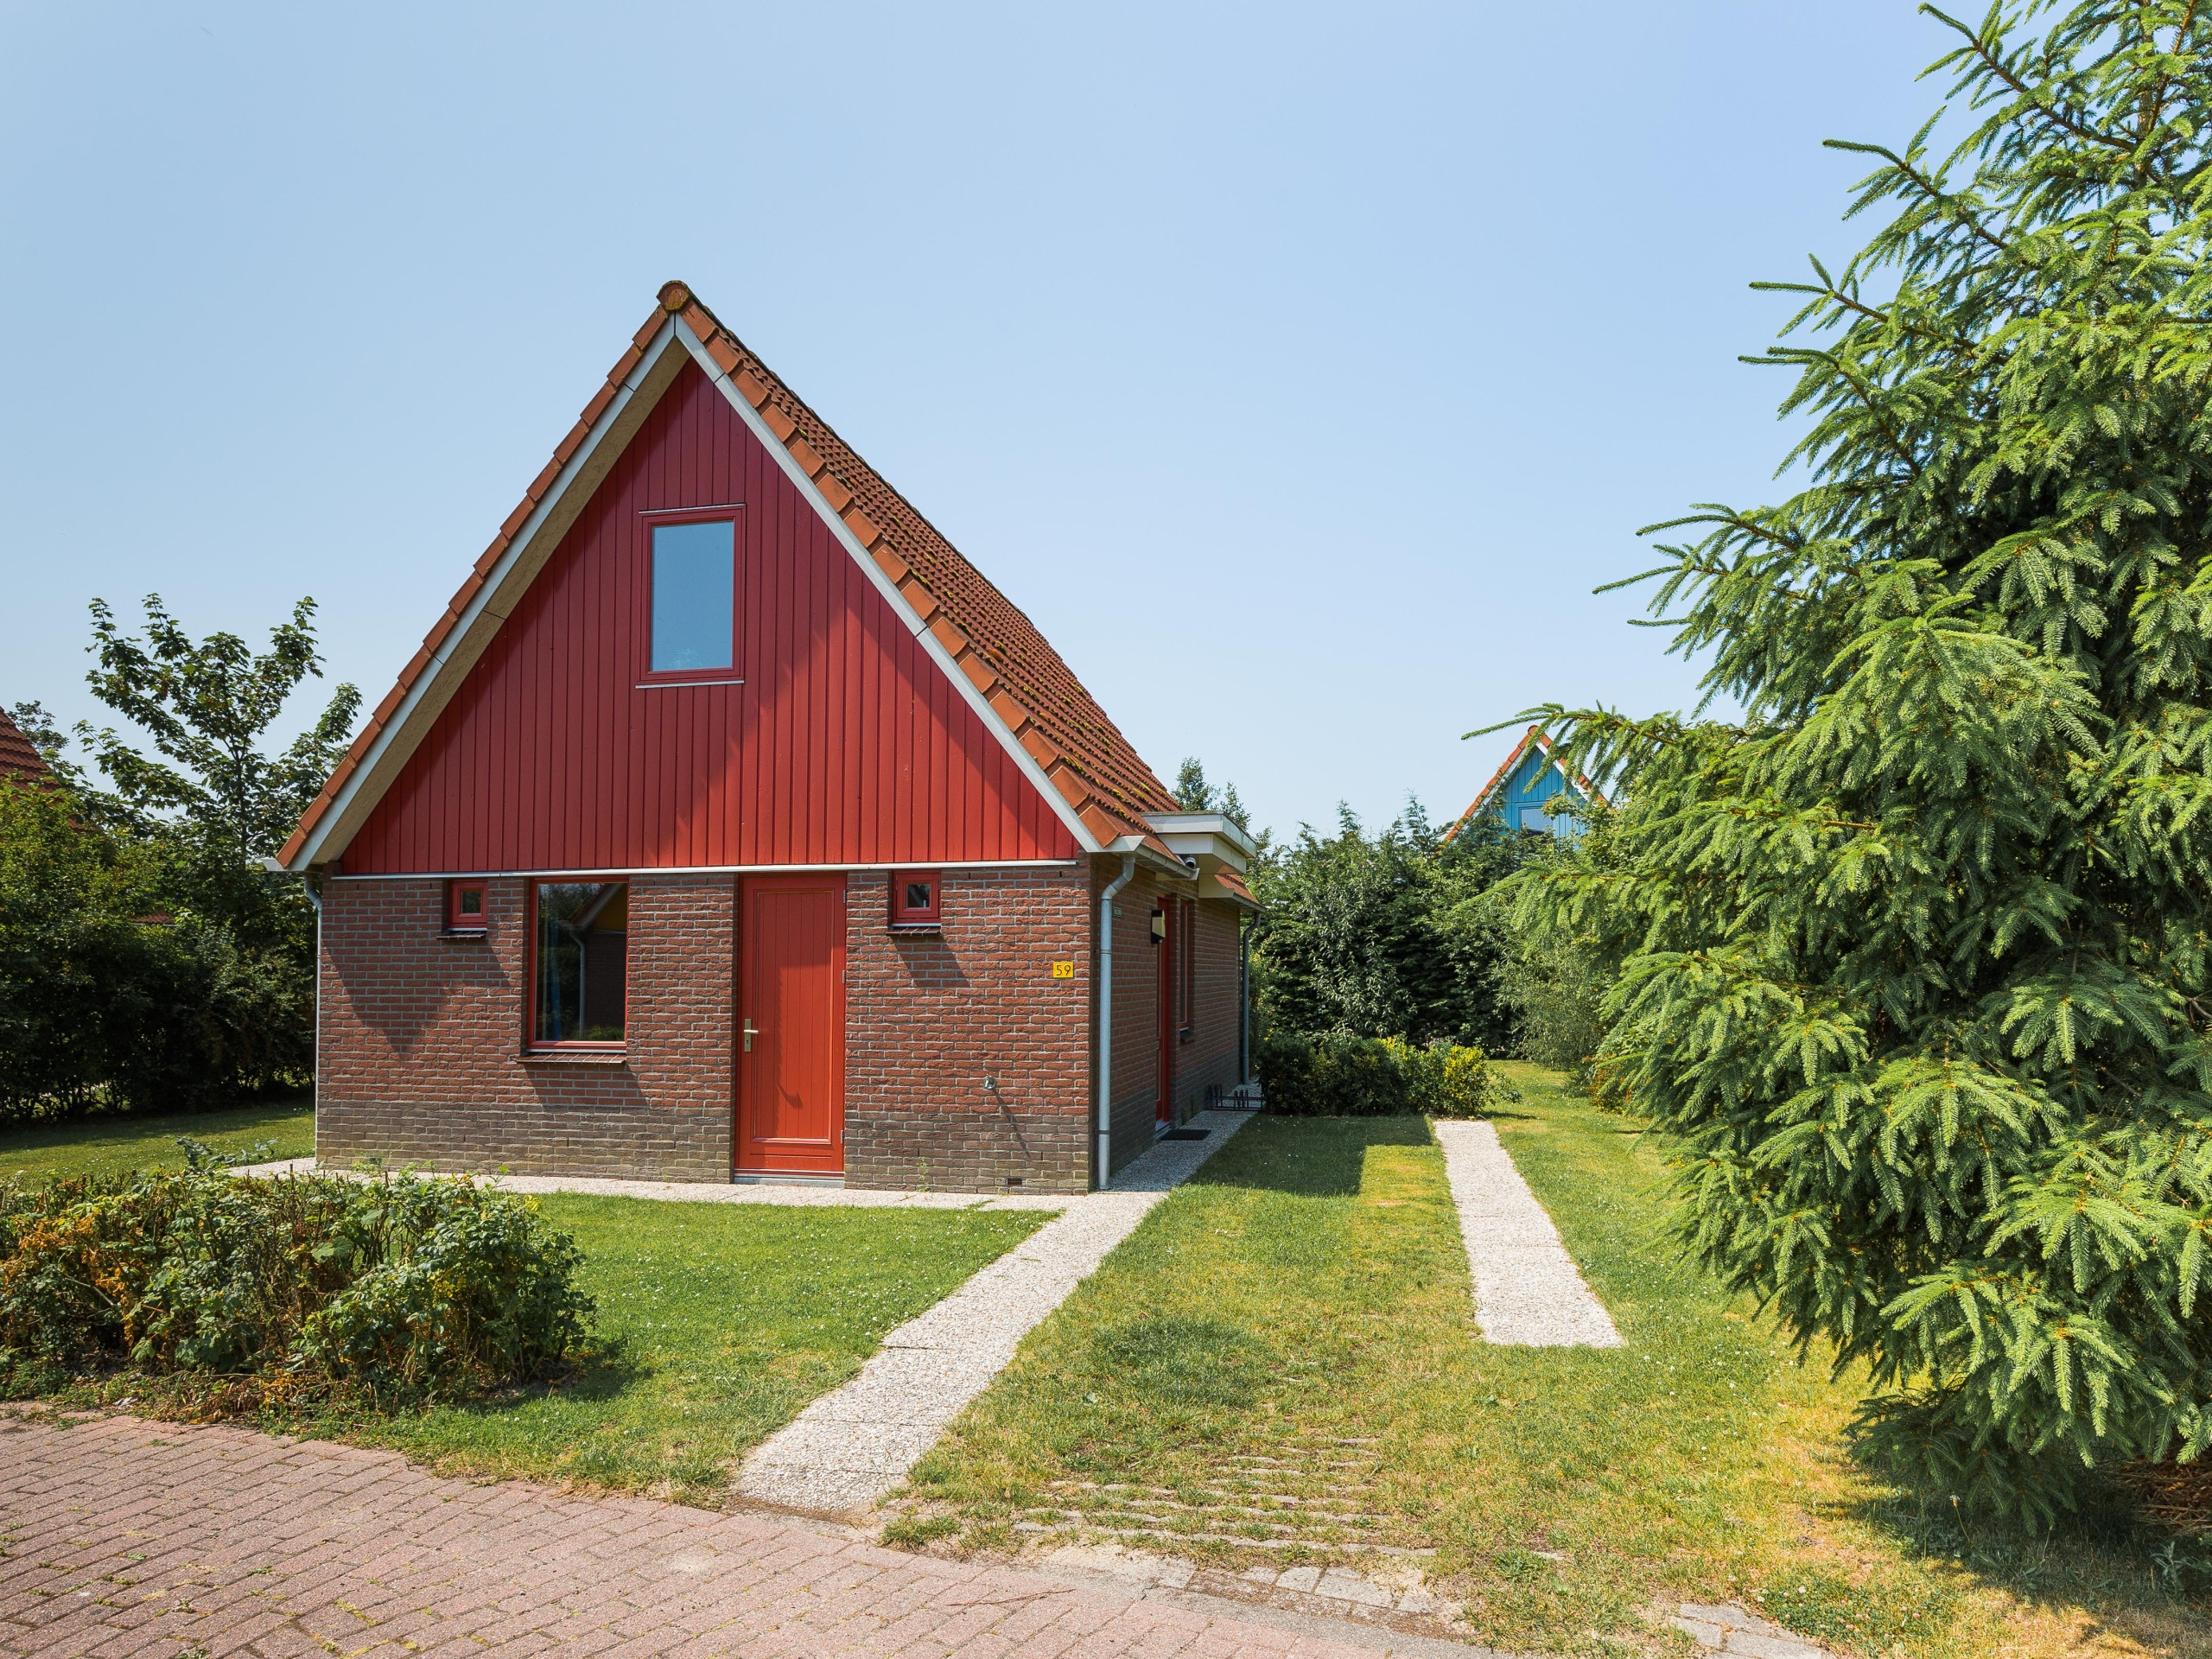 Detached holiday home in bungalow park by the Waddenzee